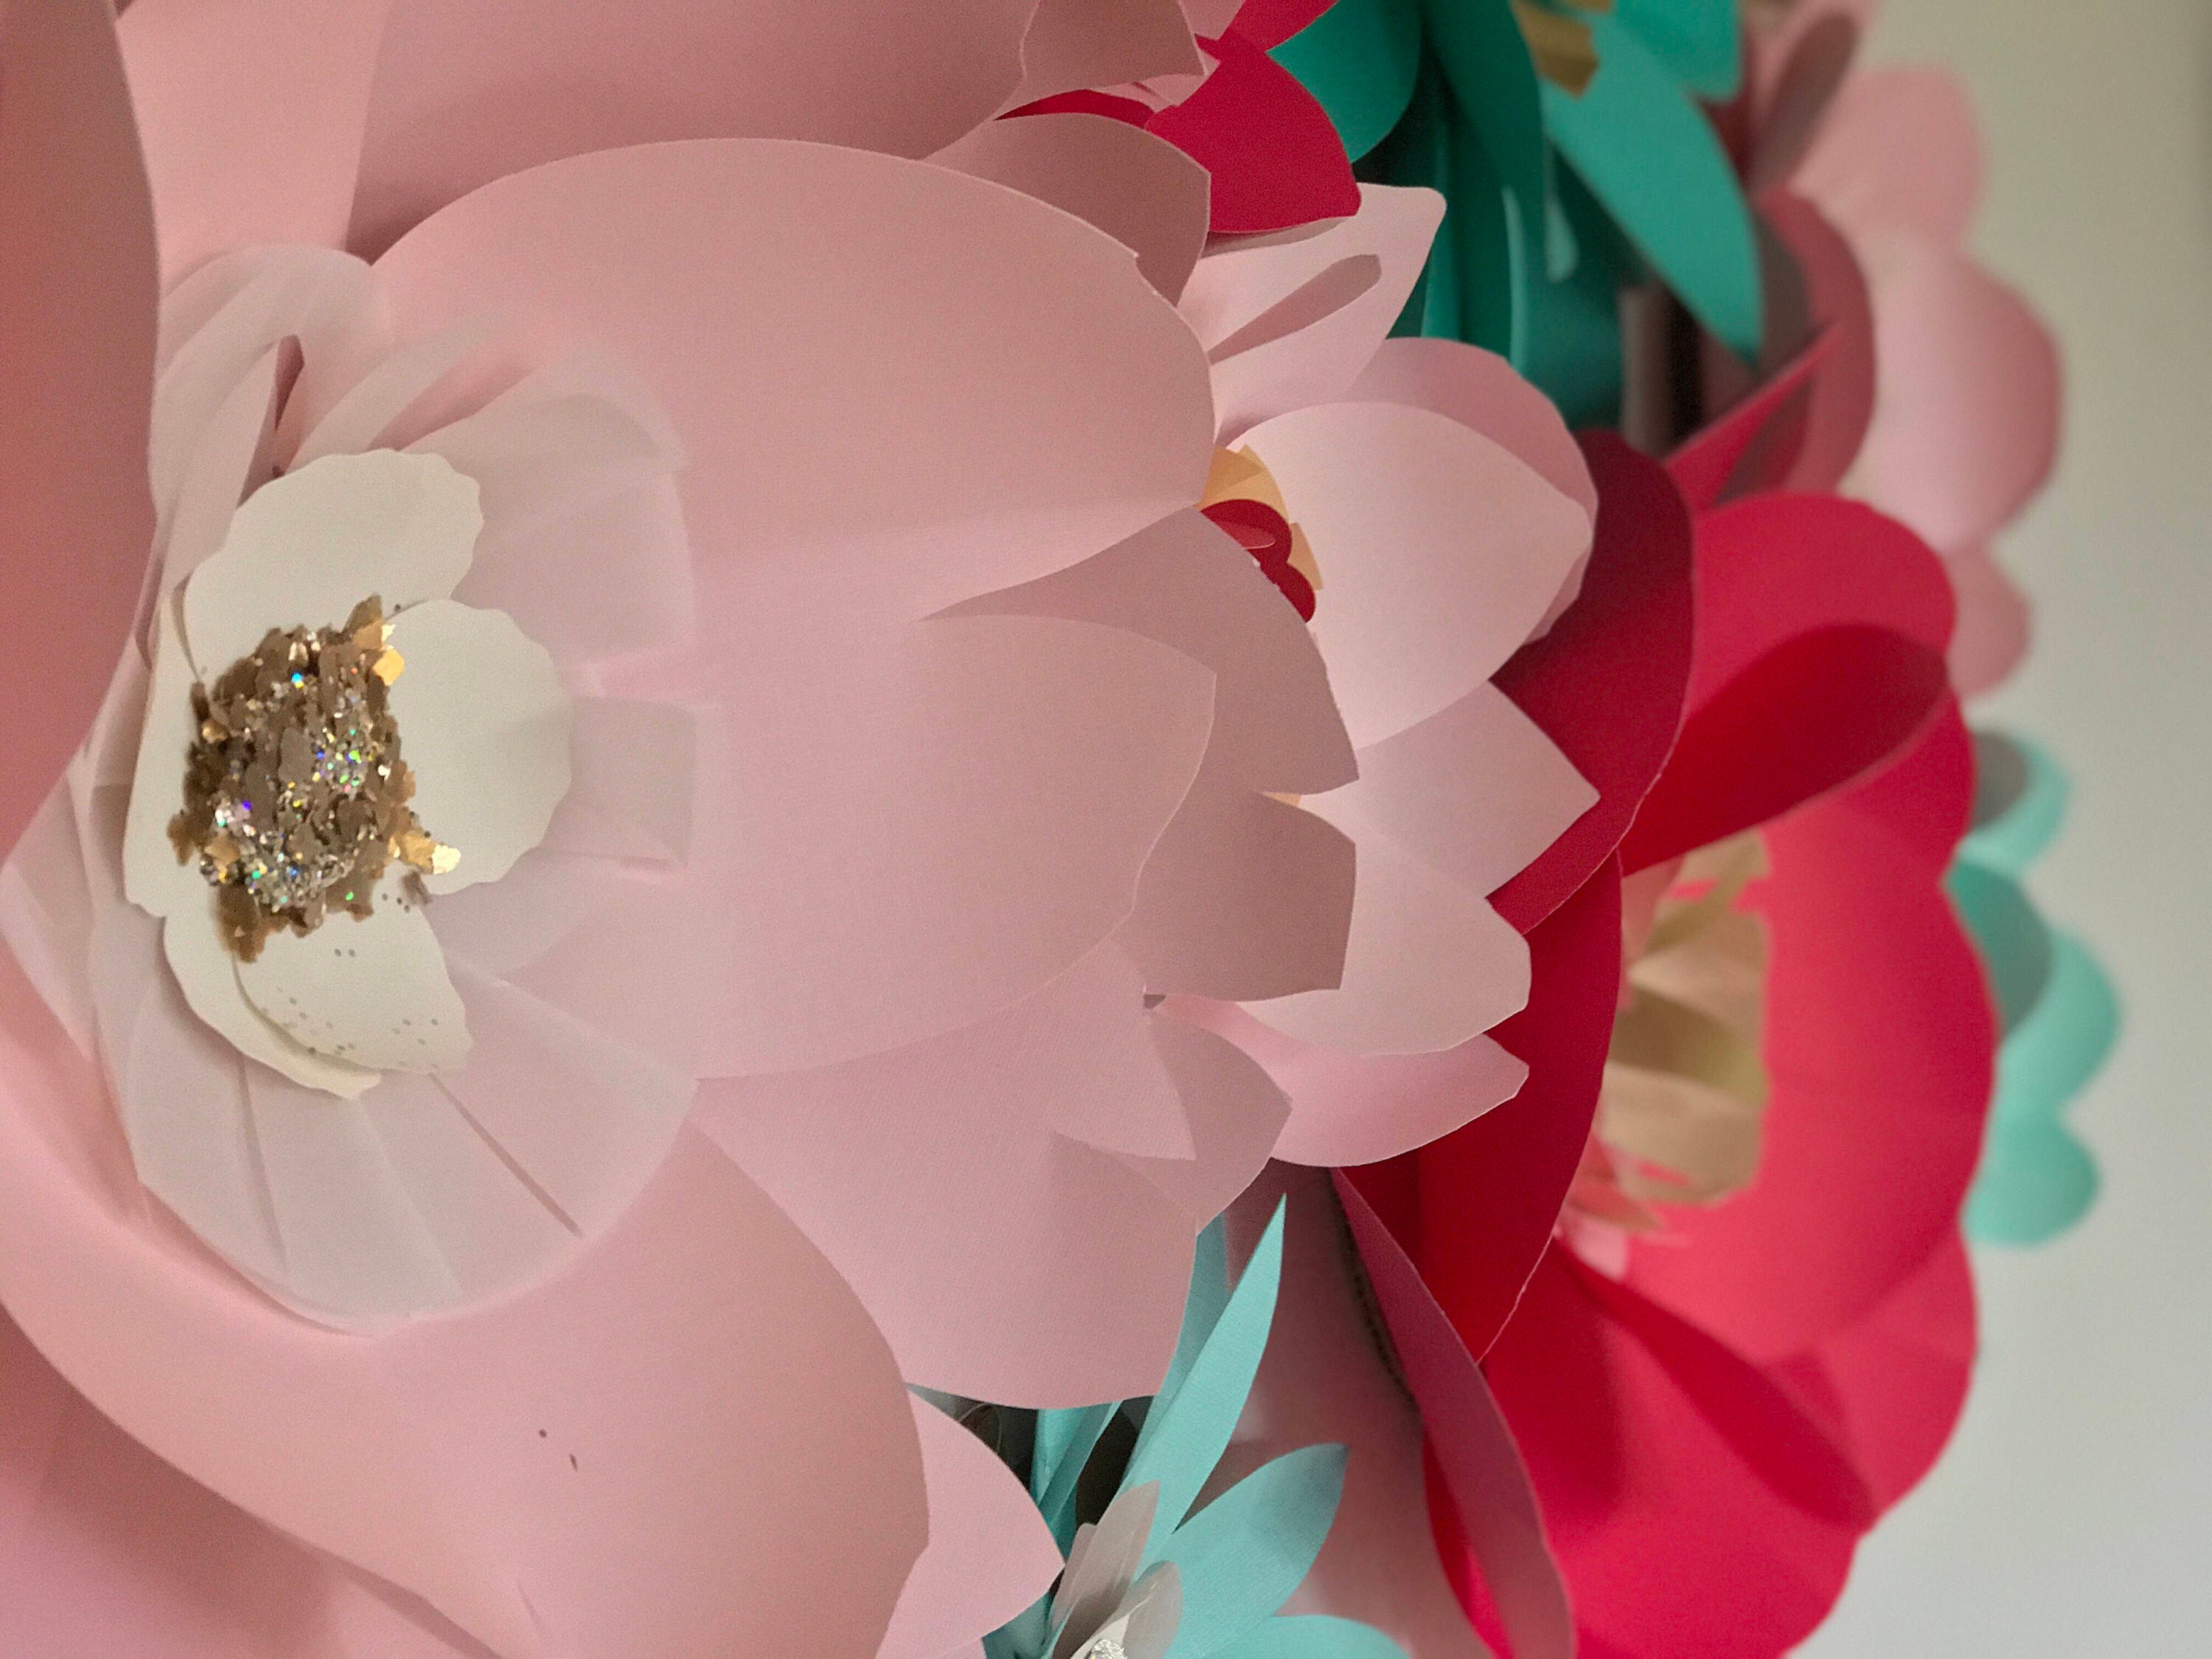 Wedding flower backdrop giant pink paper flowers wall decor teal ...